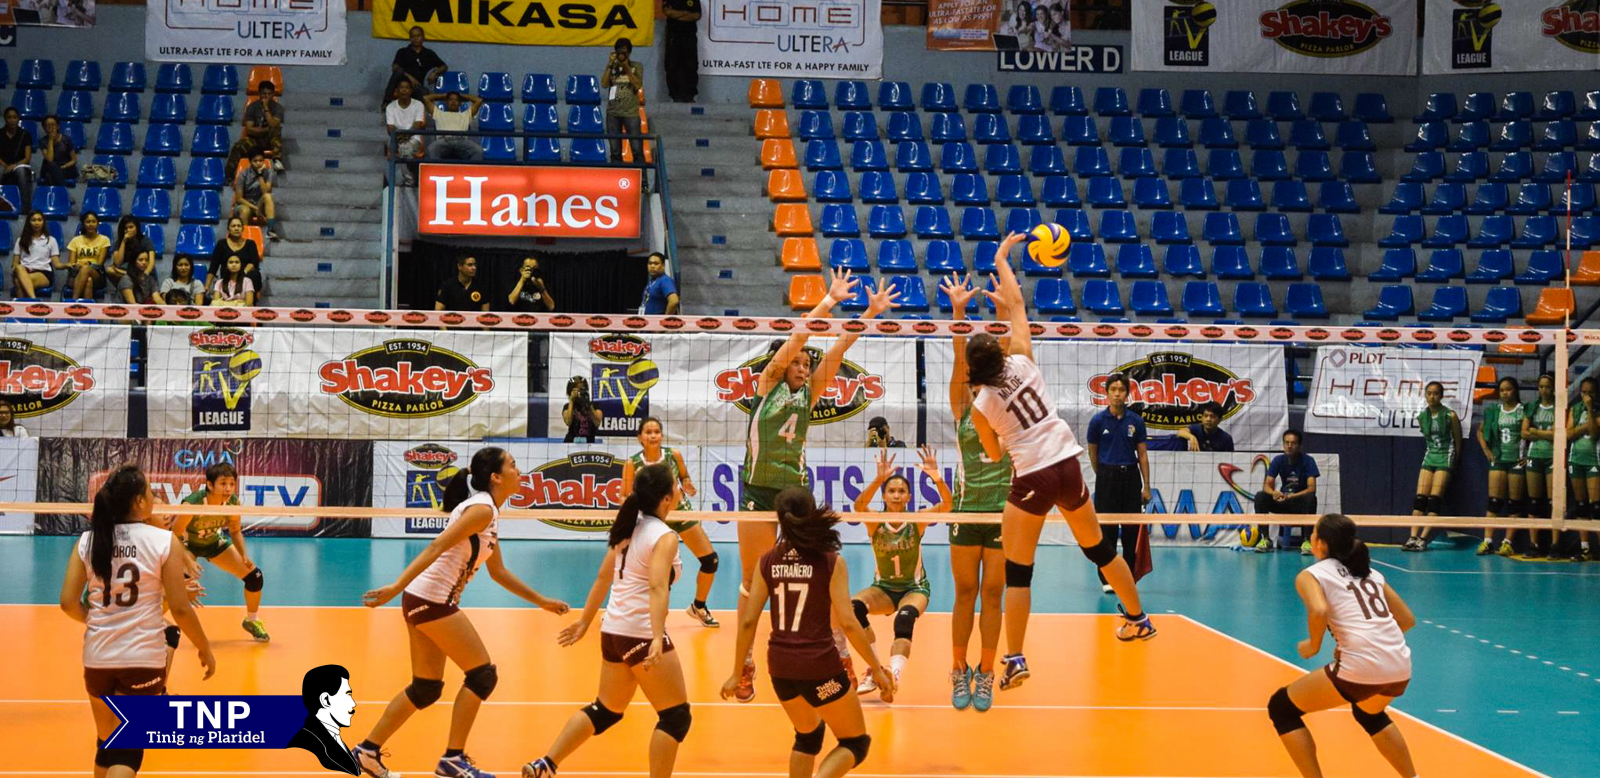 UP finishes V-league stint on a high note, overwhelms DLSU-D